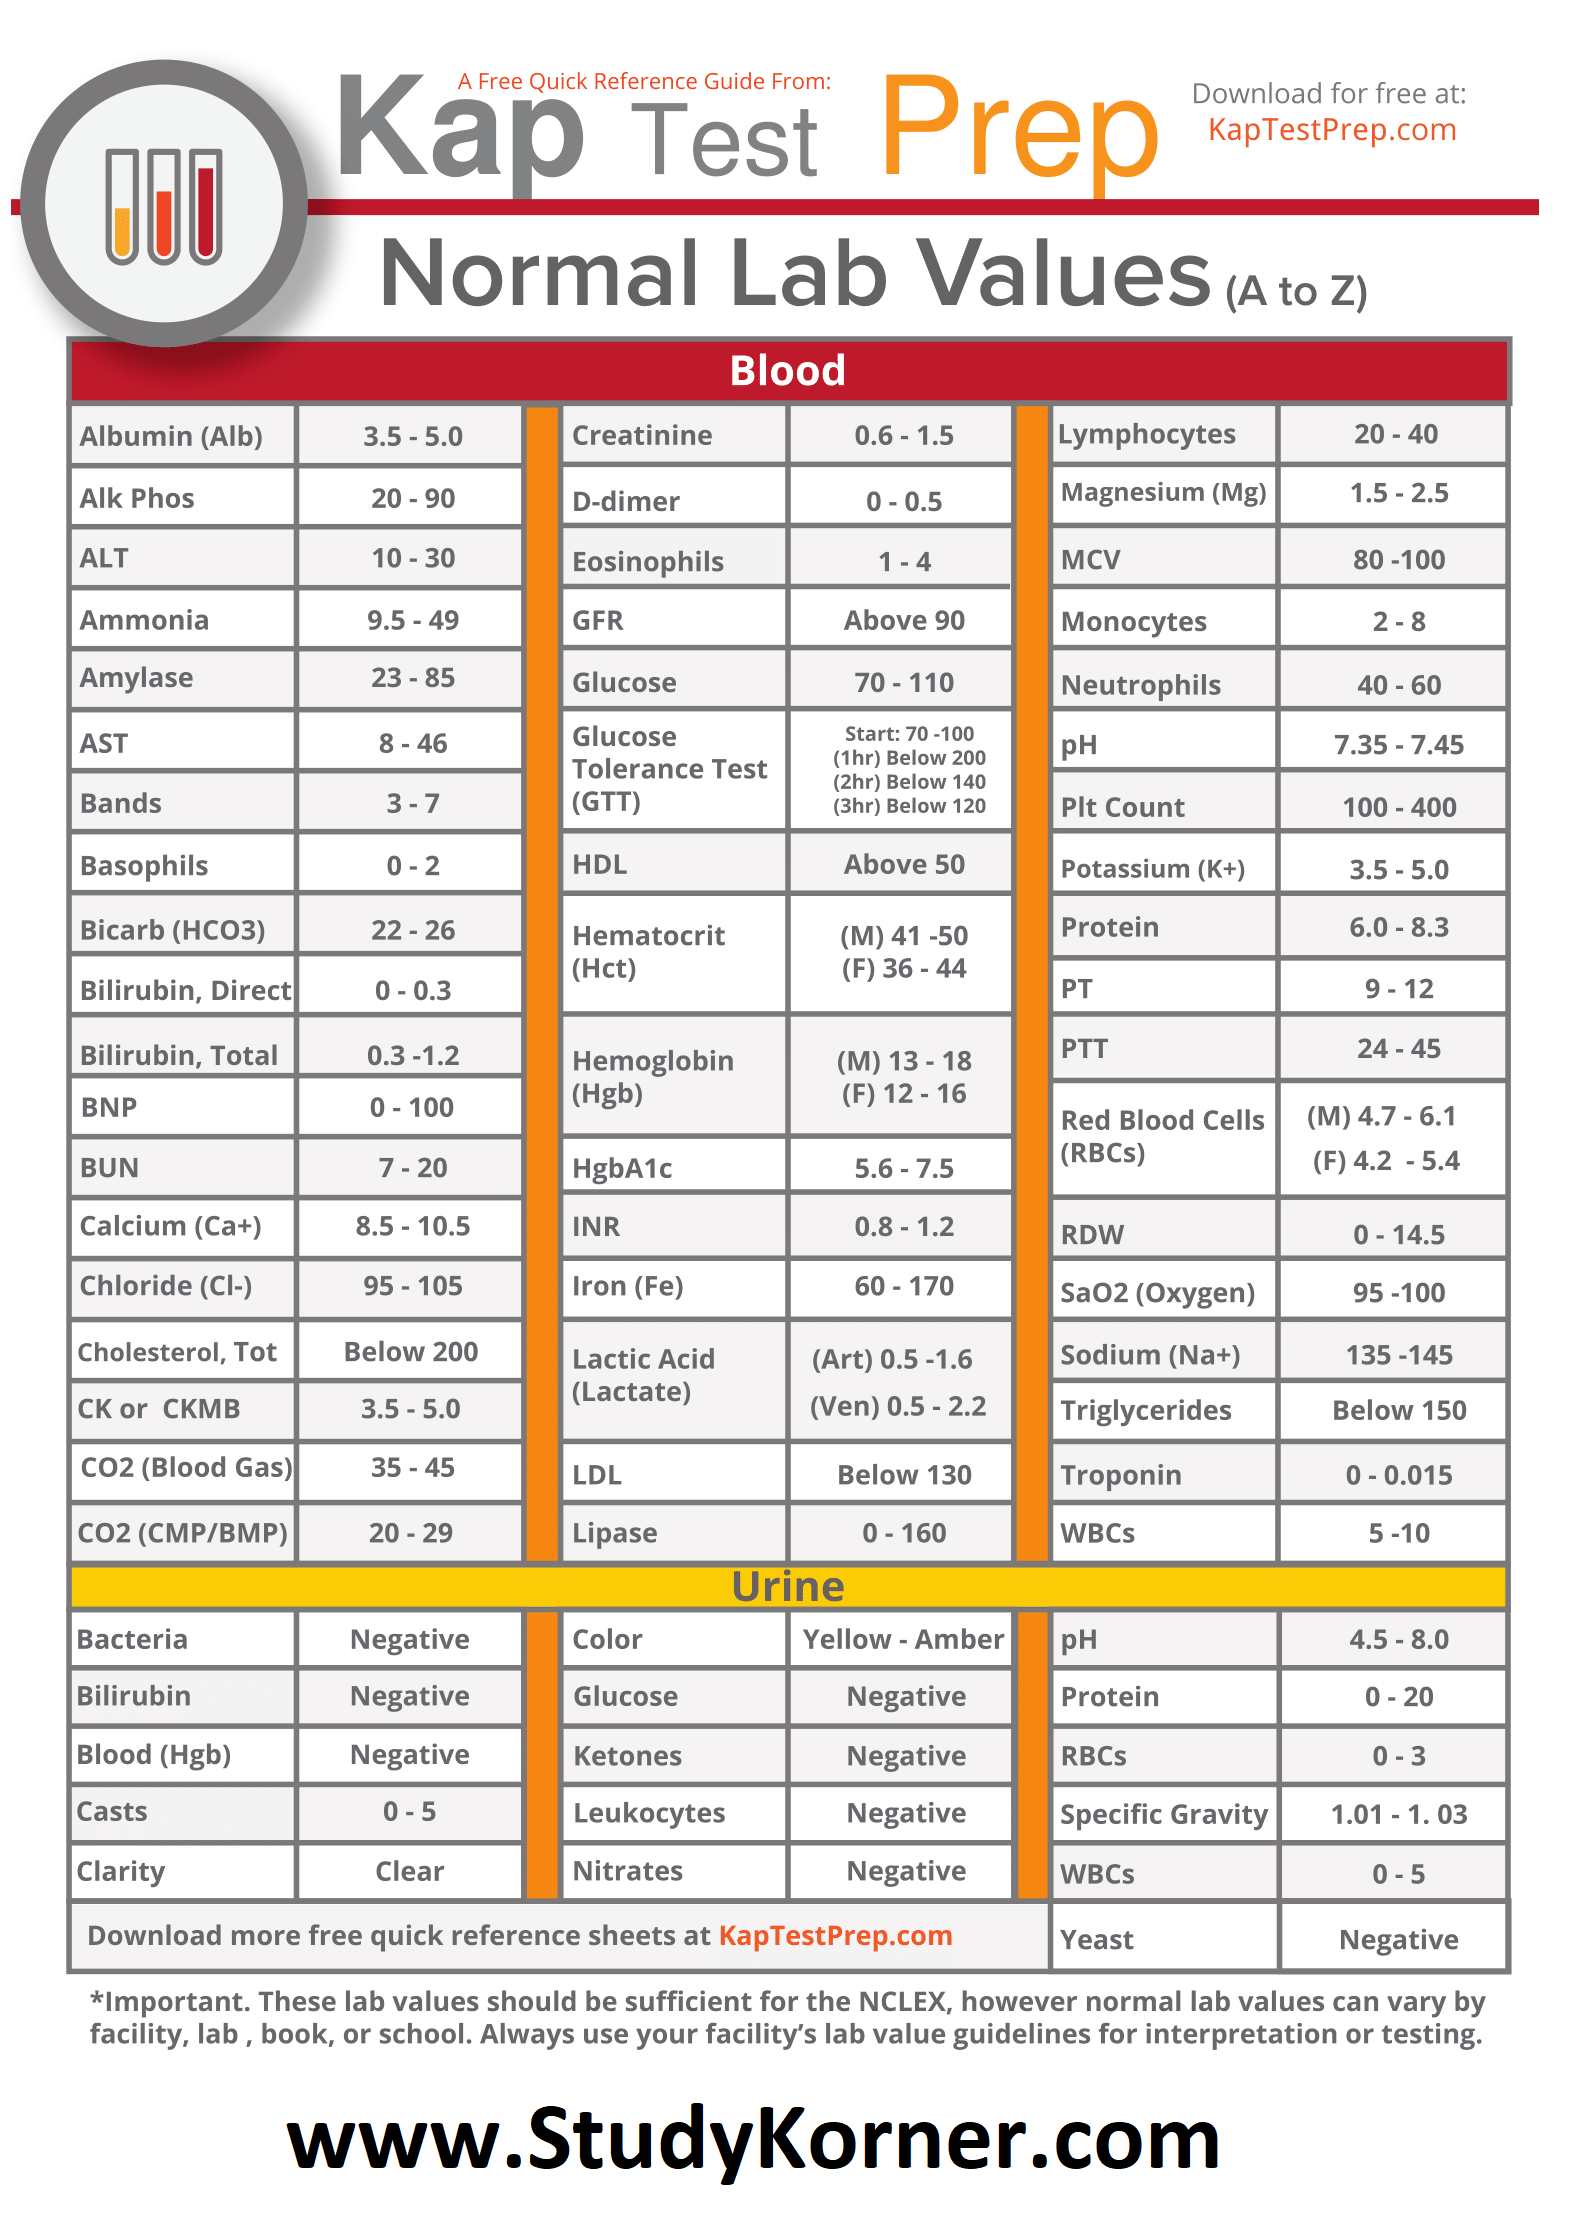 Normal Lab Values Cheat Sheet for NCLEX: Lab Values from A to Z